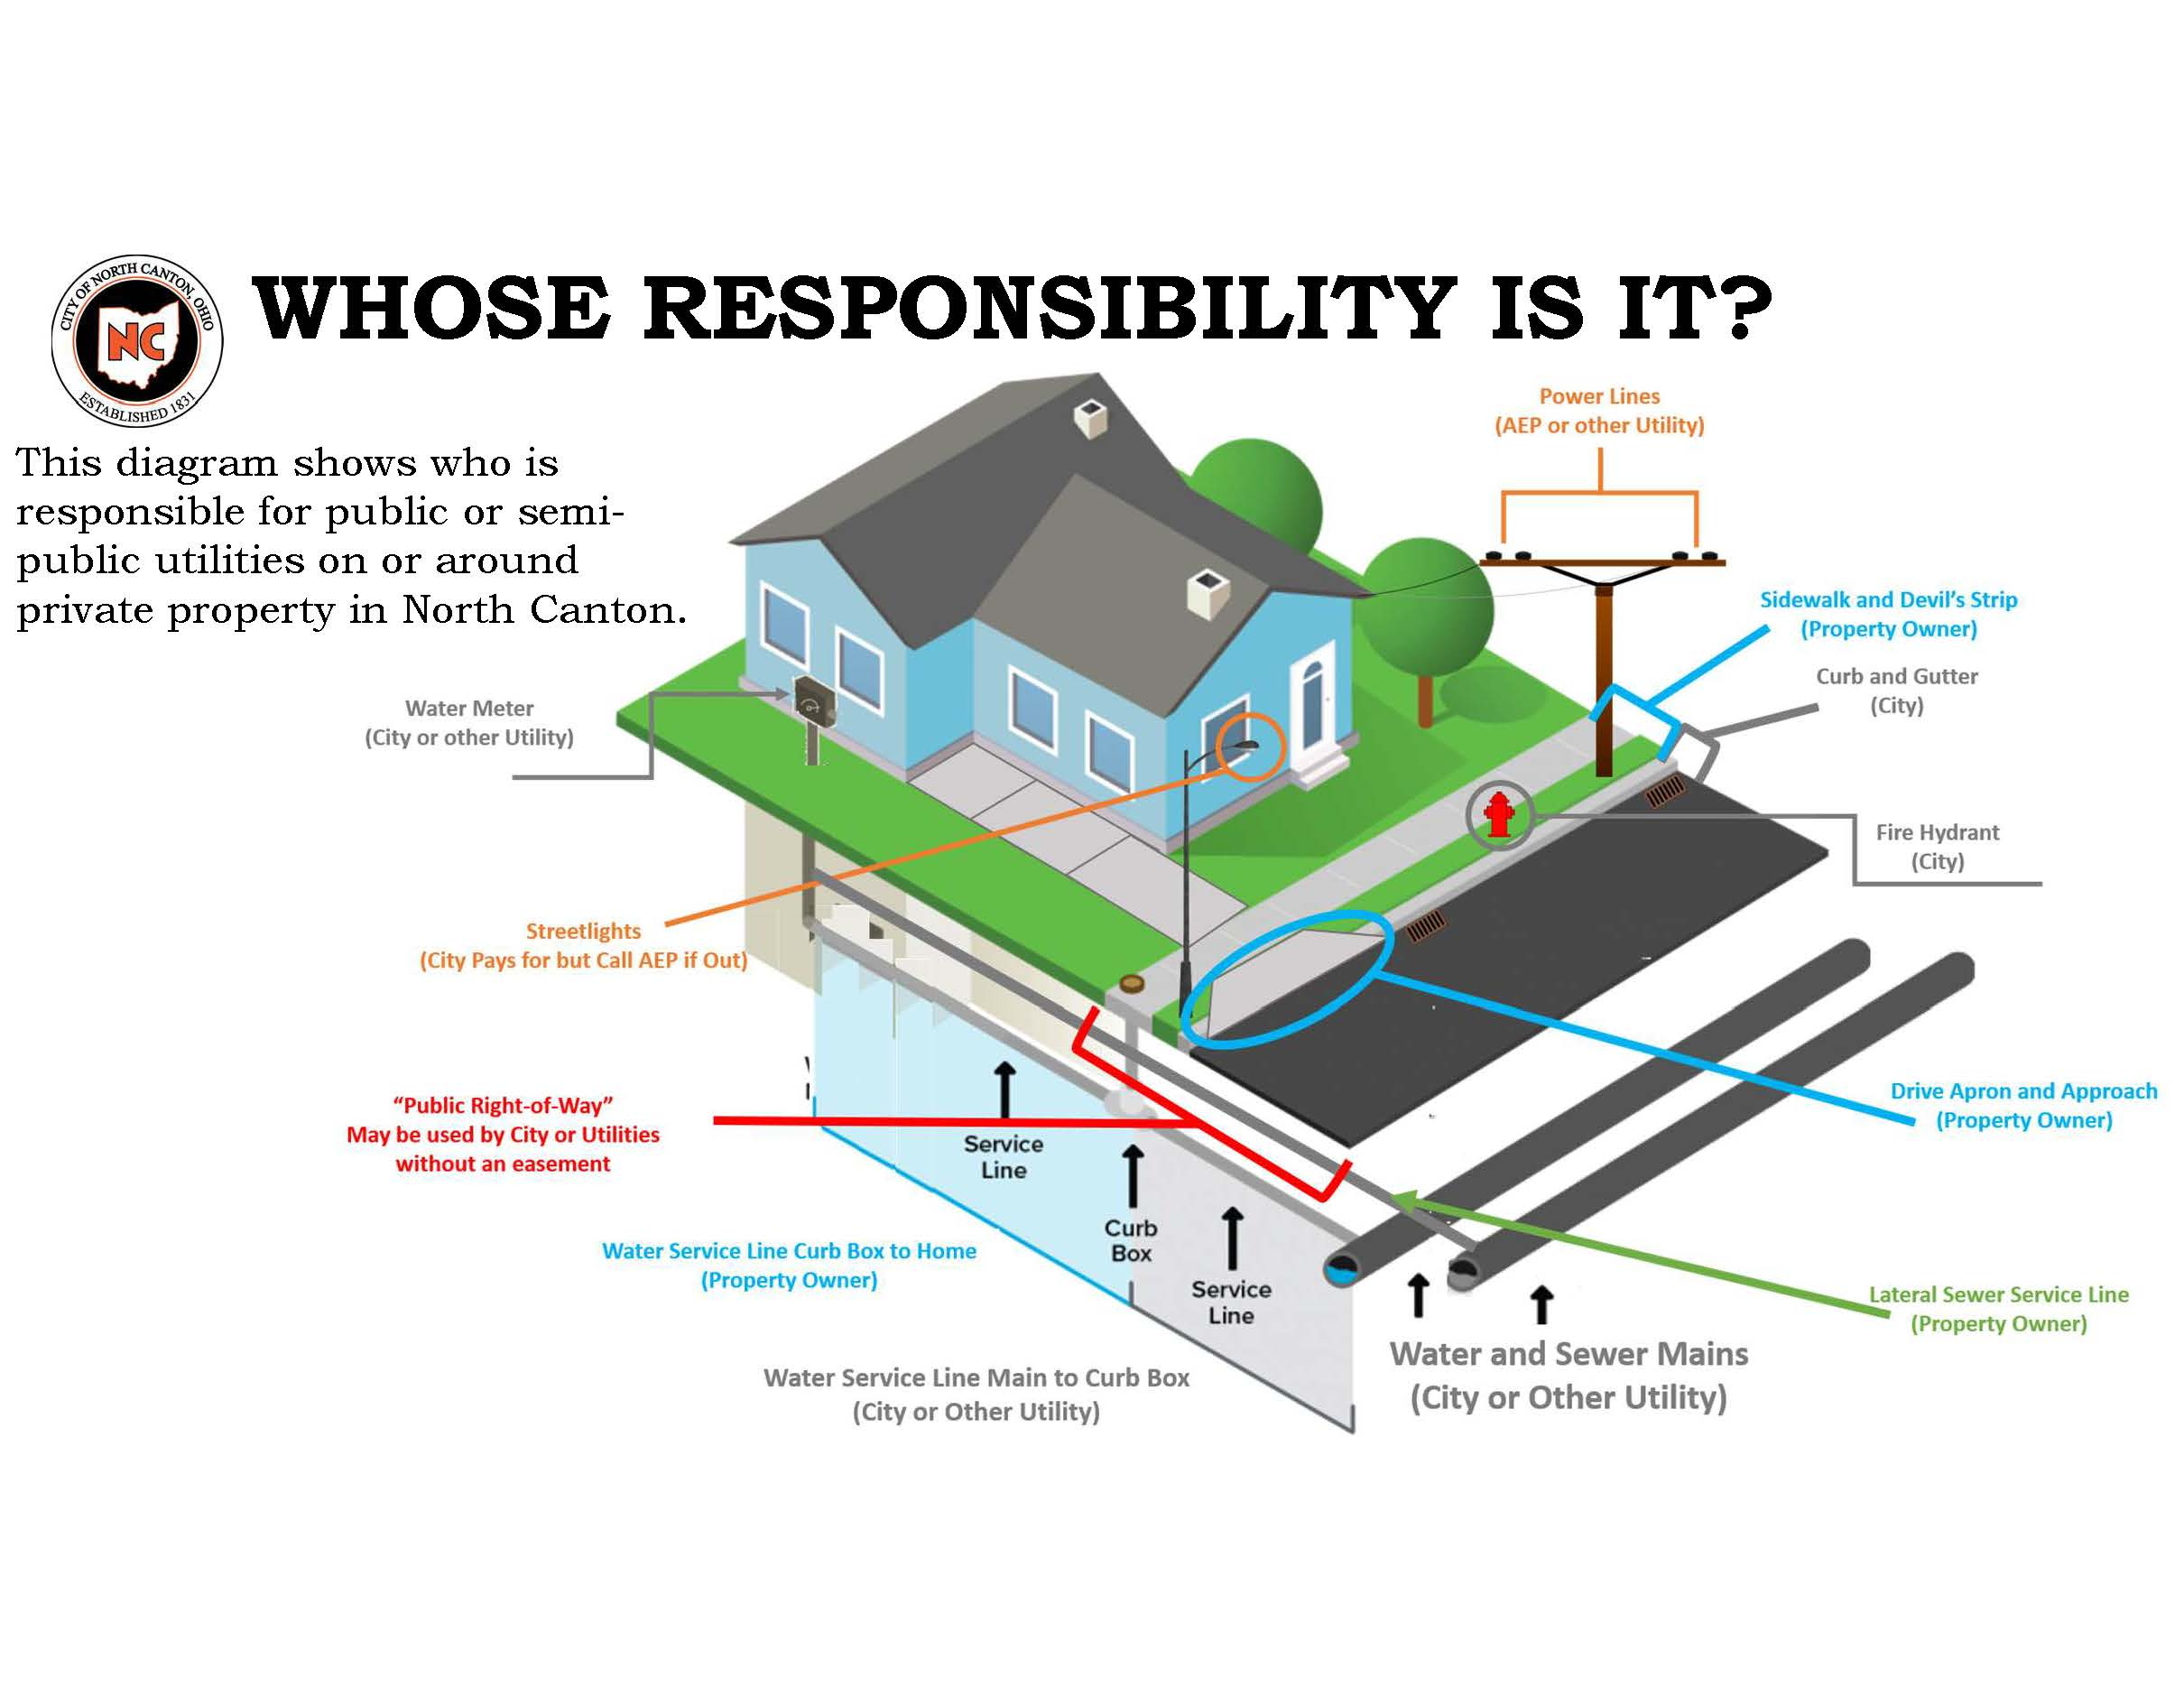 ROW and Utility Responsibility